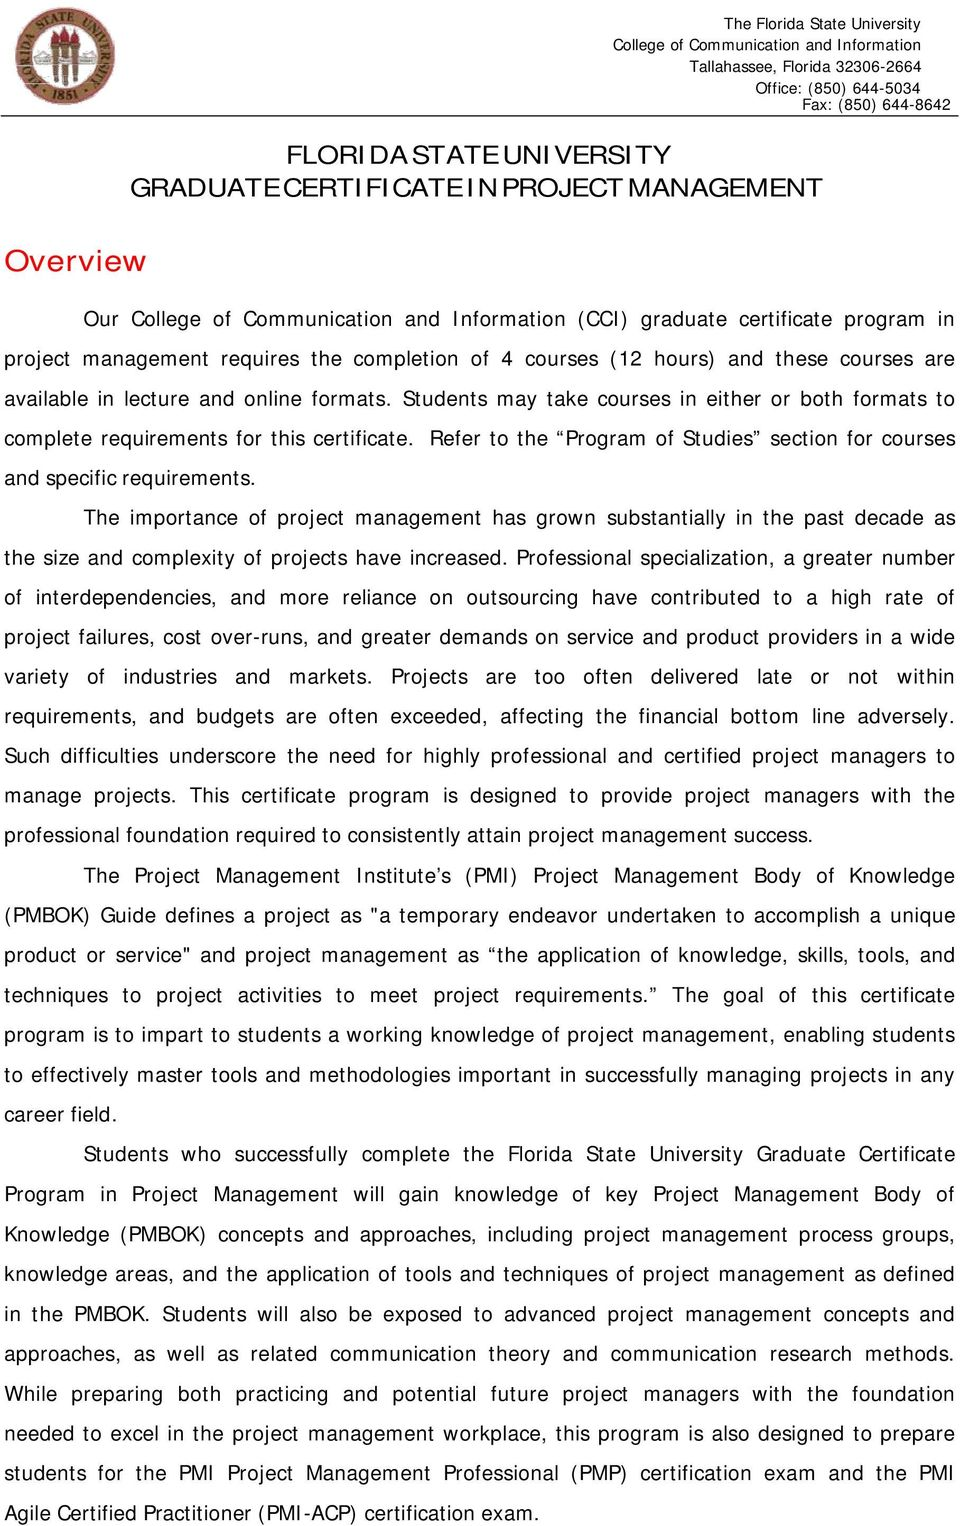 Graduate Certificate Project Management College Of Communication